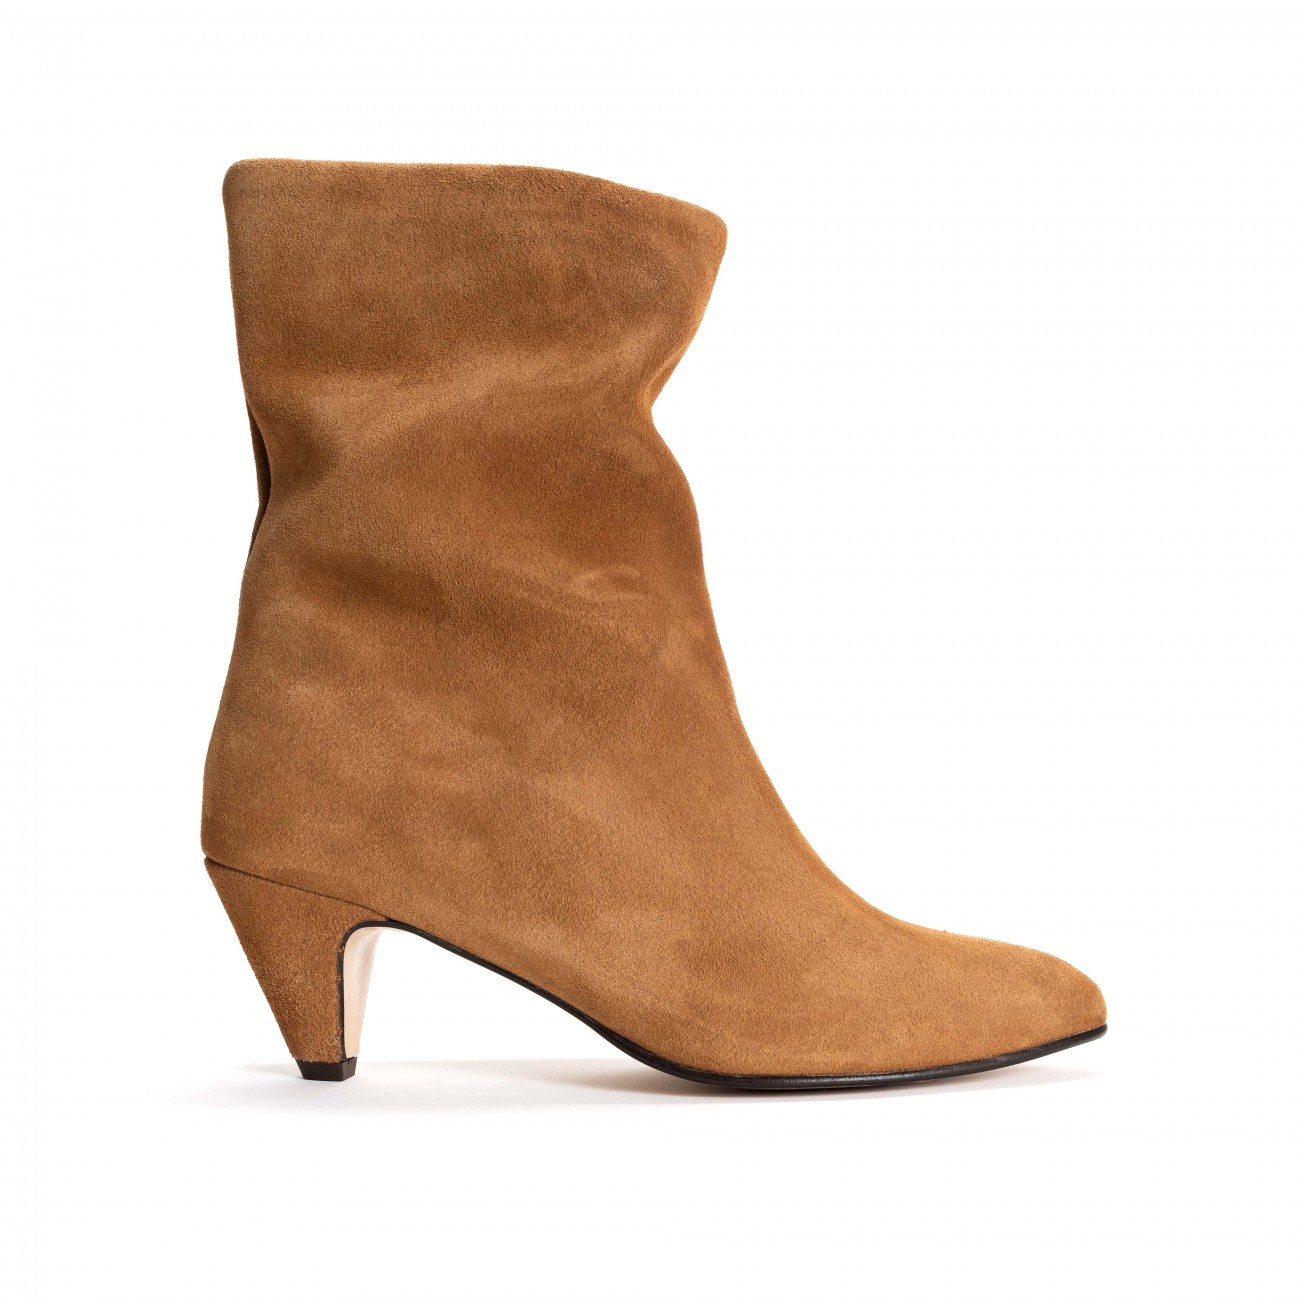 Vully 50 Stiletto Suede Camel